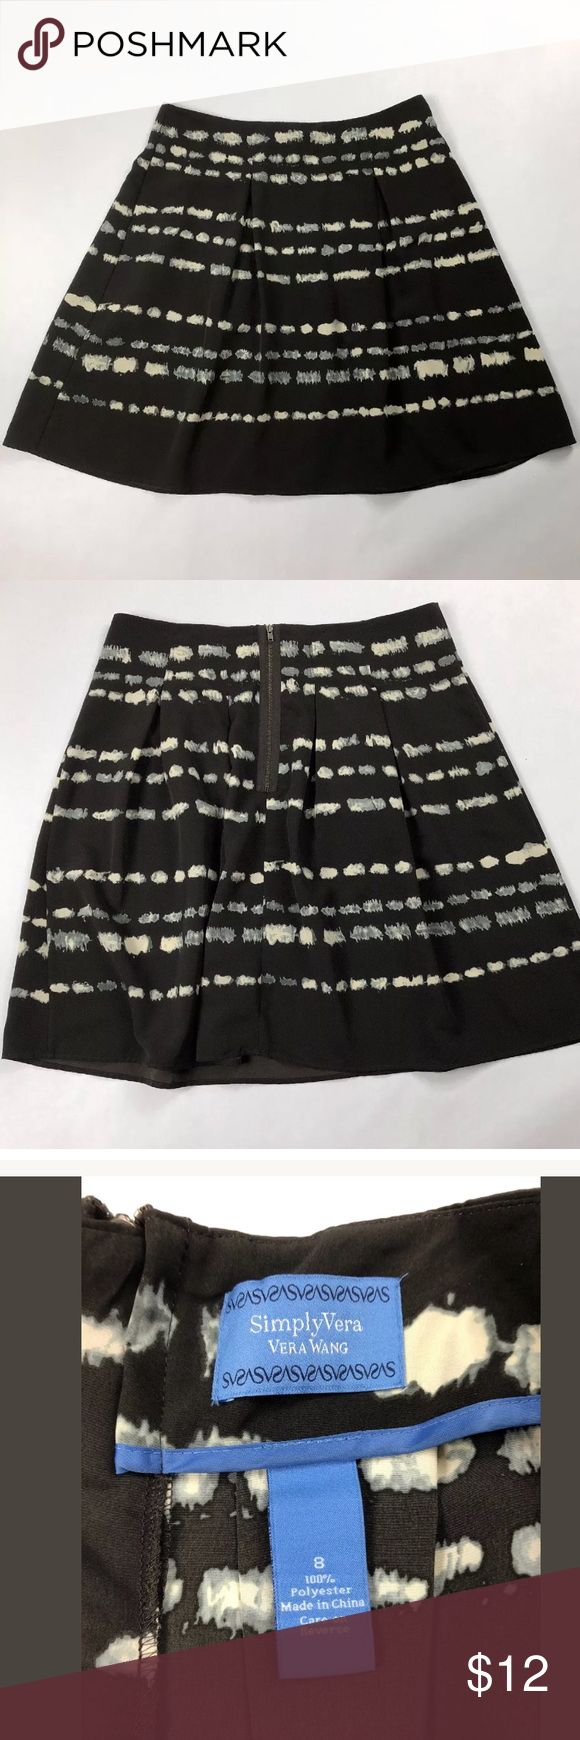 Simply Vera Wang Women's Skirt size Small A line Simply Vera Wang Women's Skirt size Small A line Brown  RN 121973 100% polyester  no holes or stains  waist inches length: 21 inches    J Simply Vera Vera Wang Skirts A-Line or Full